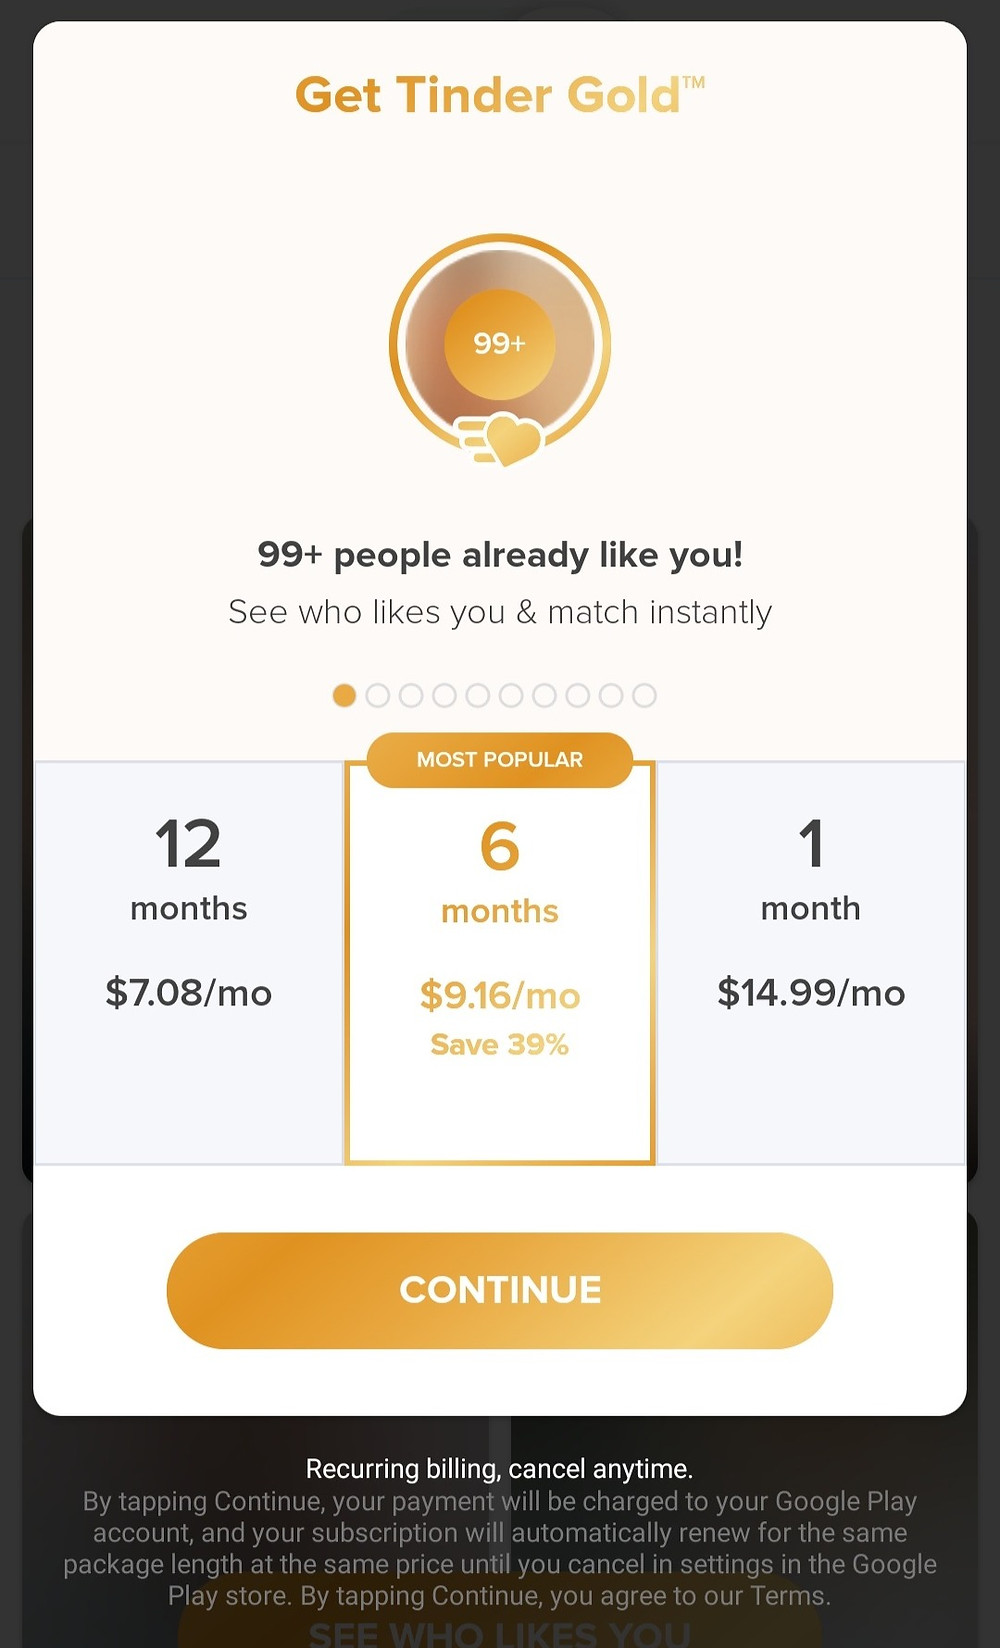 Tinder Gold who likes you. In this article we cover Tinder gold features, Tinder free features, Tinder Plus features, discuss if Tinder Gold is worth it, what is Tinder verified, what is Tinder Super Like, what is Tinder boost and when to use it, how does the Tinder algorithm work, and what is the Tinder free like limit.